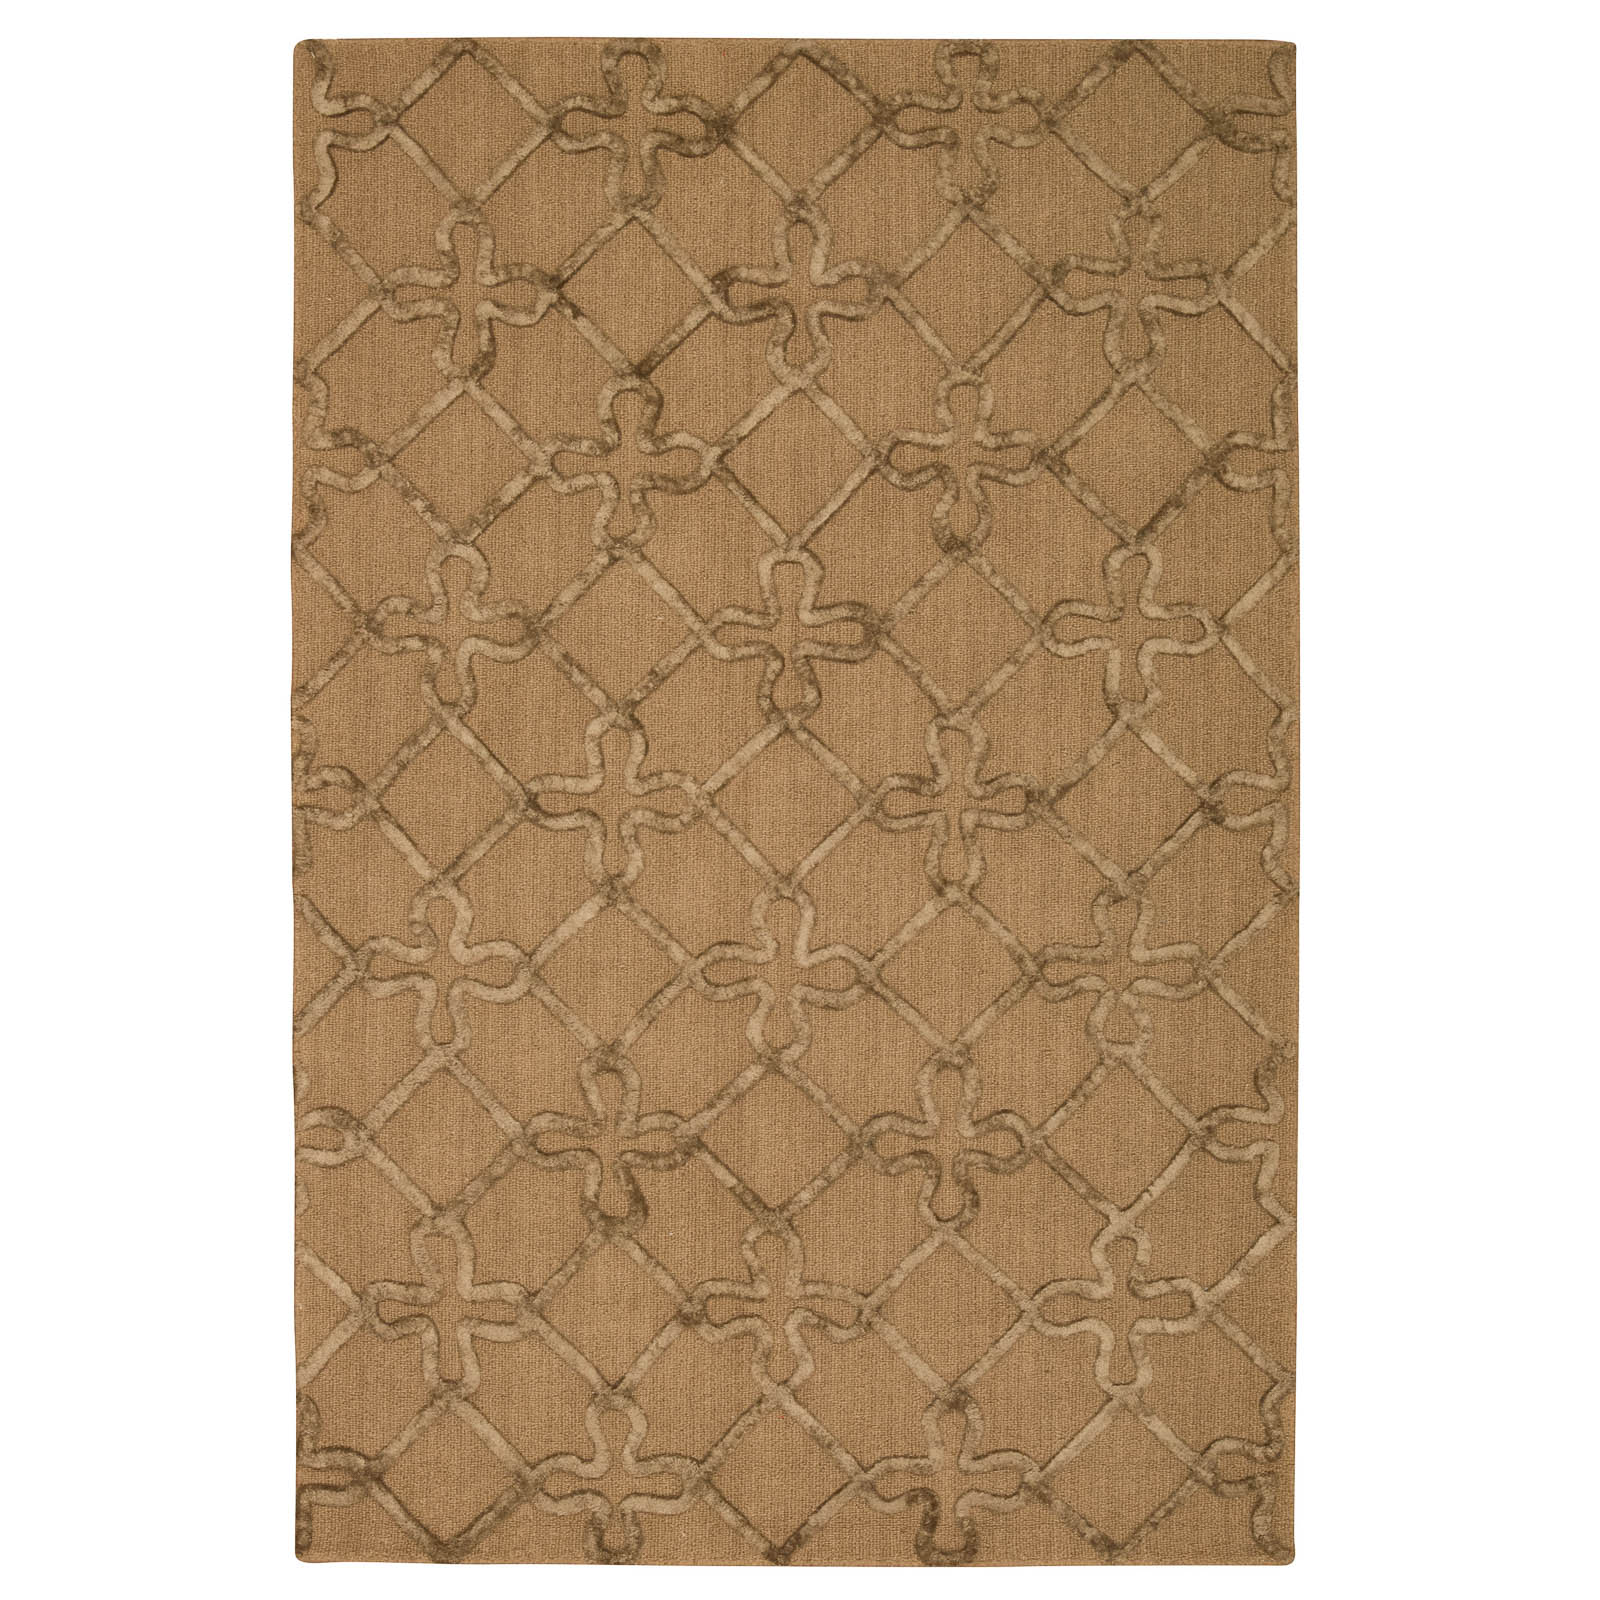 Strata Rugs STT03 in Latte and Mocha